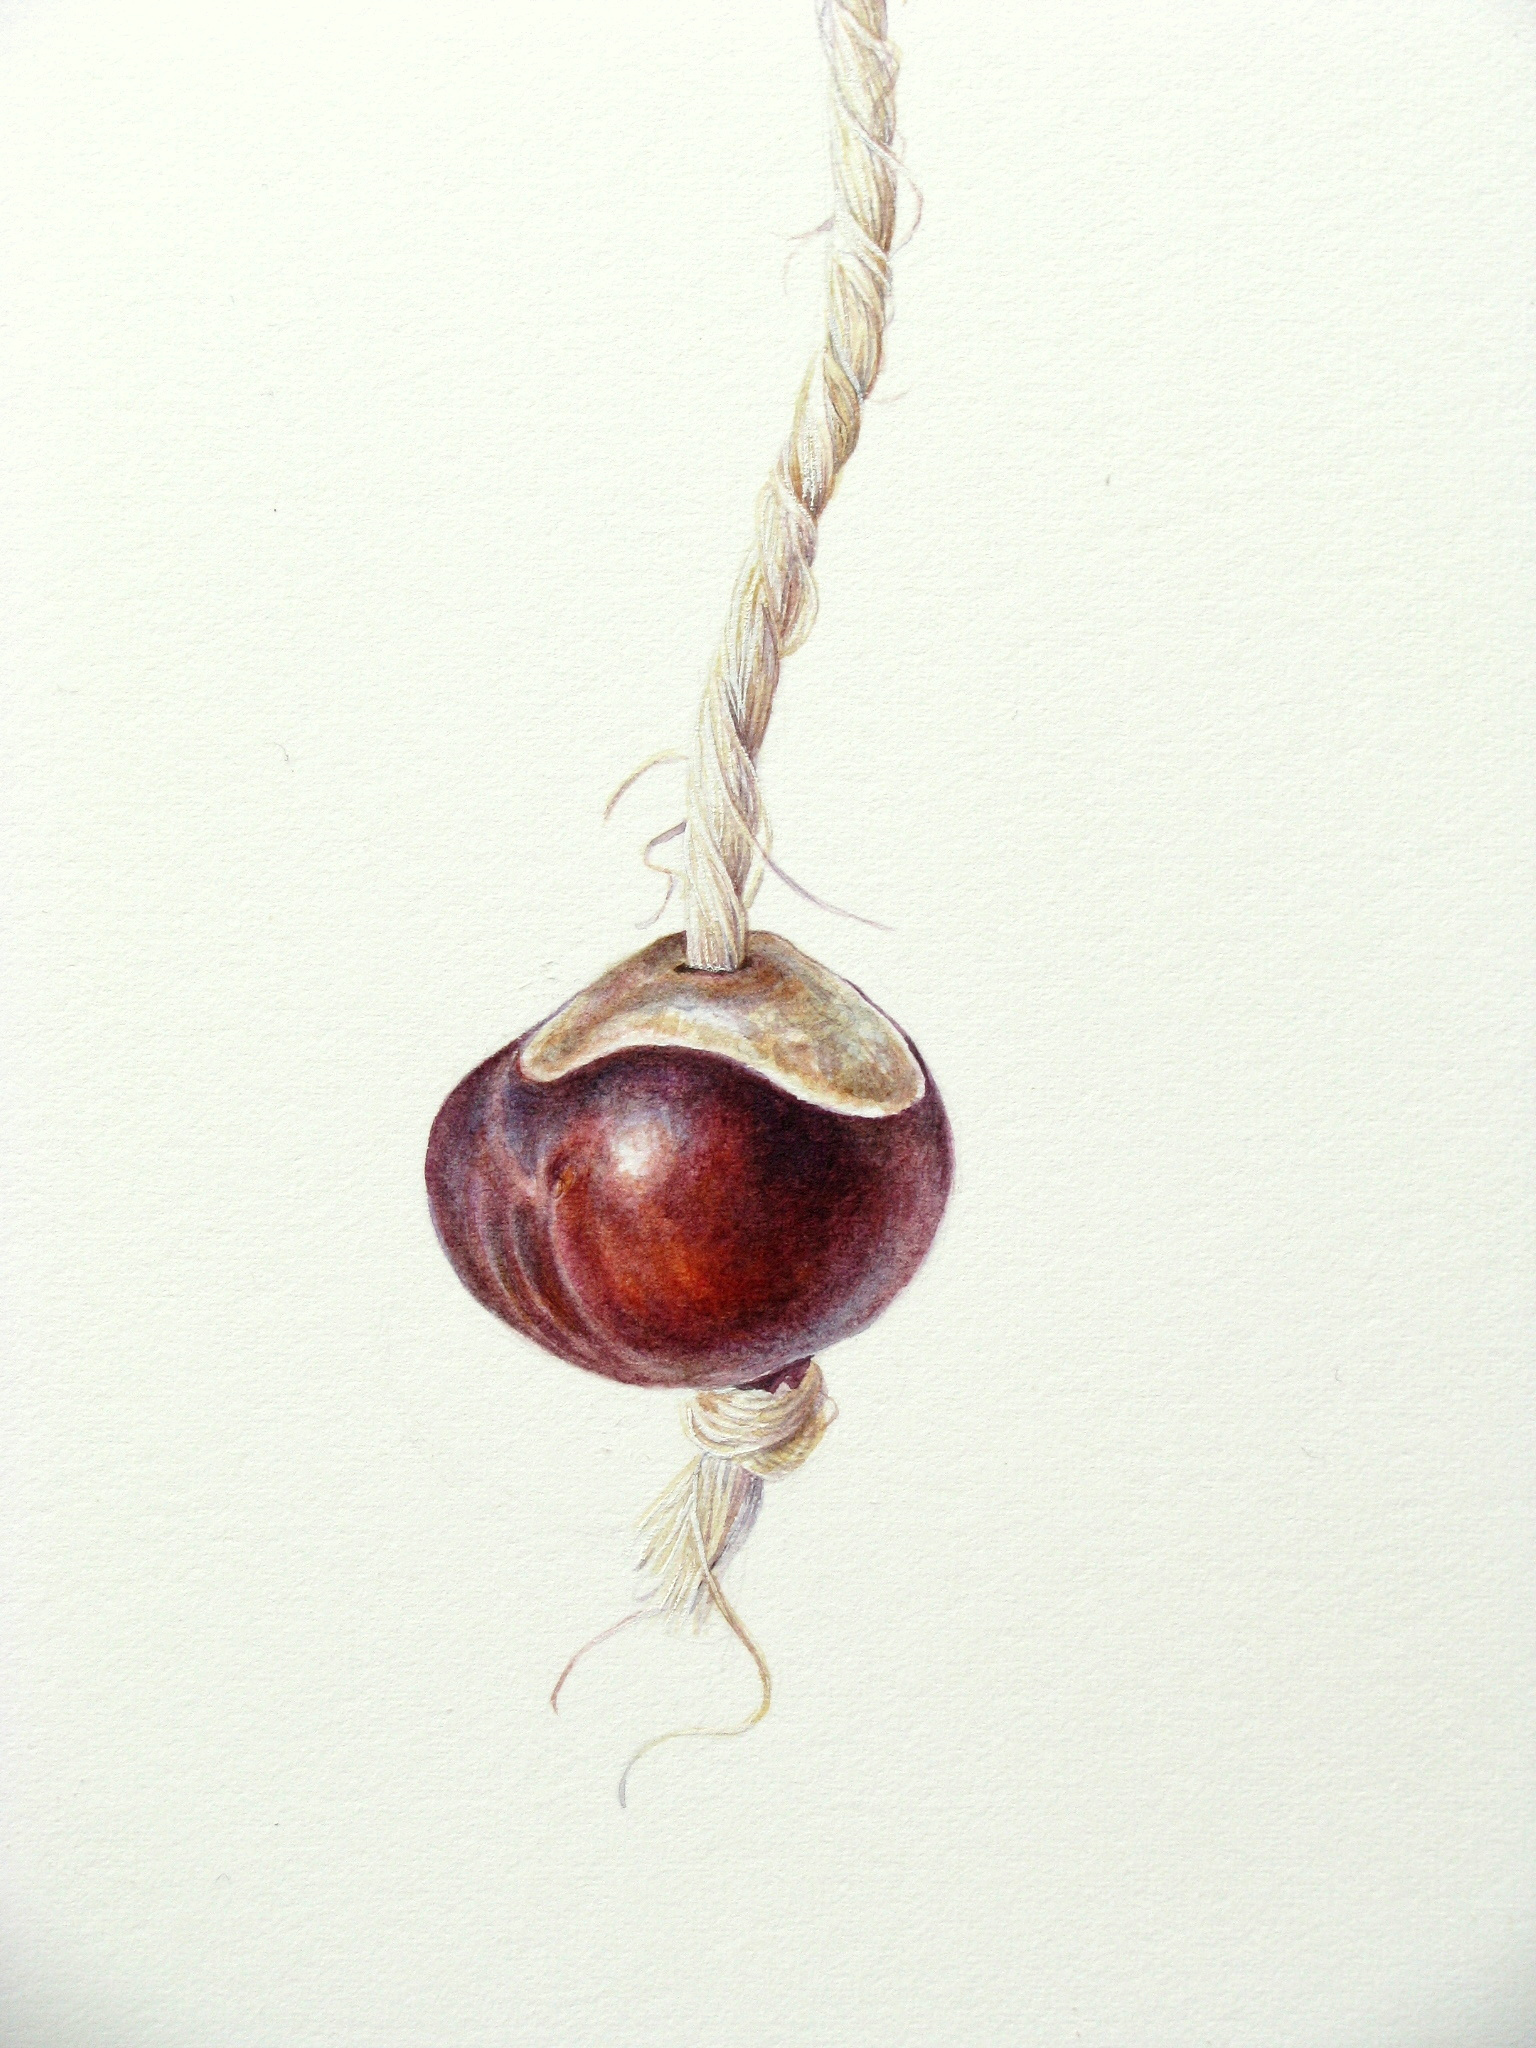 Watercolour painting of conker on string by Shevaun Doherty